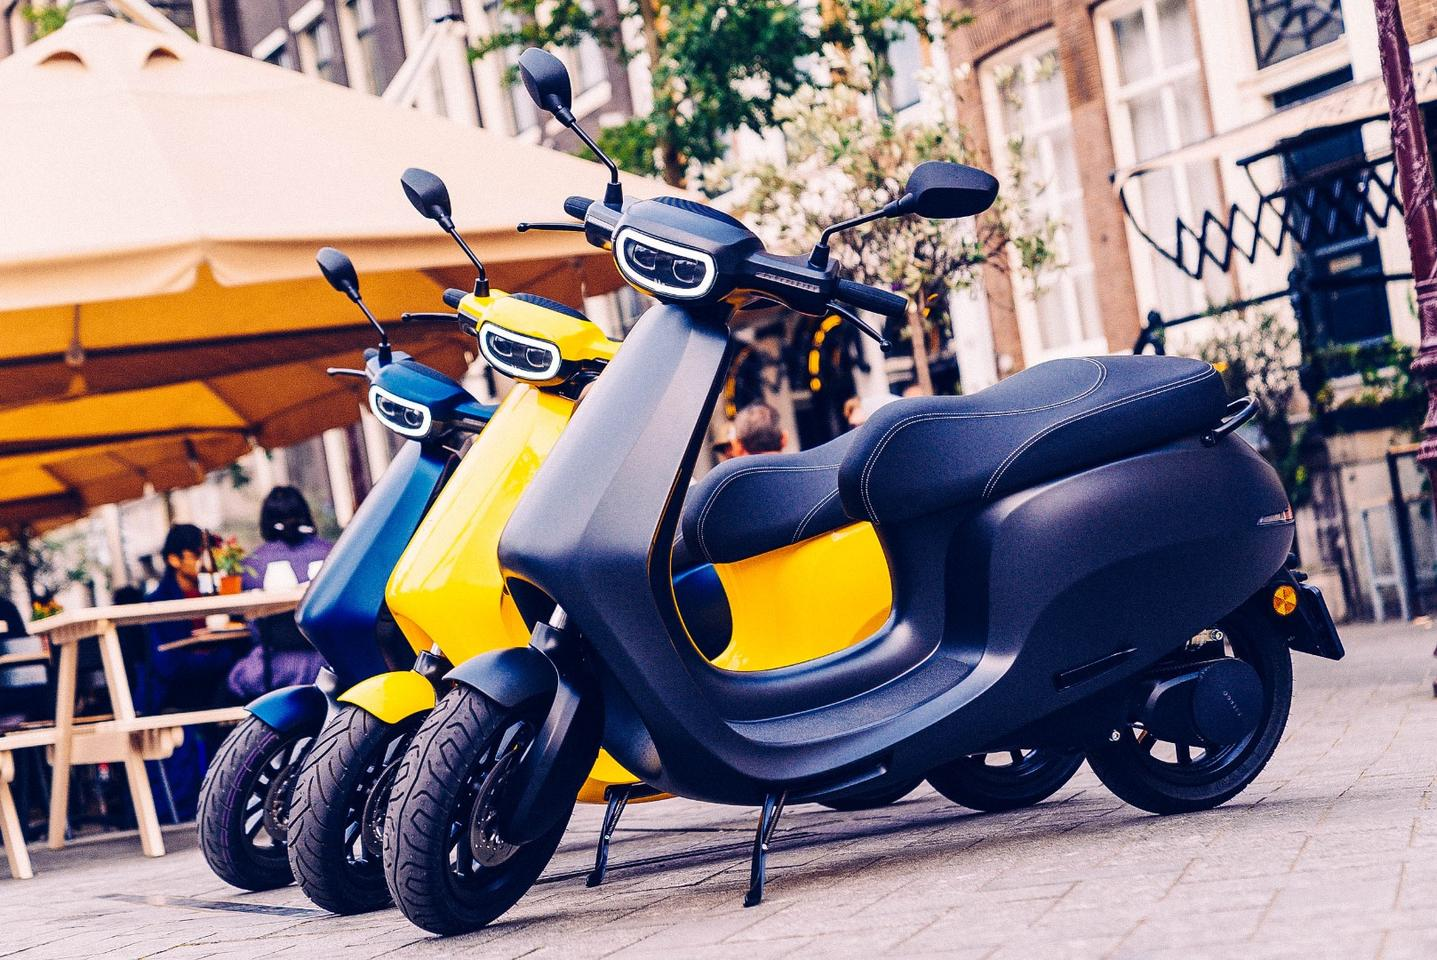 The AppScooter is due for release in Europe in the second half of 2019, with color options including yellow and blue